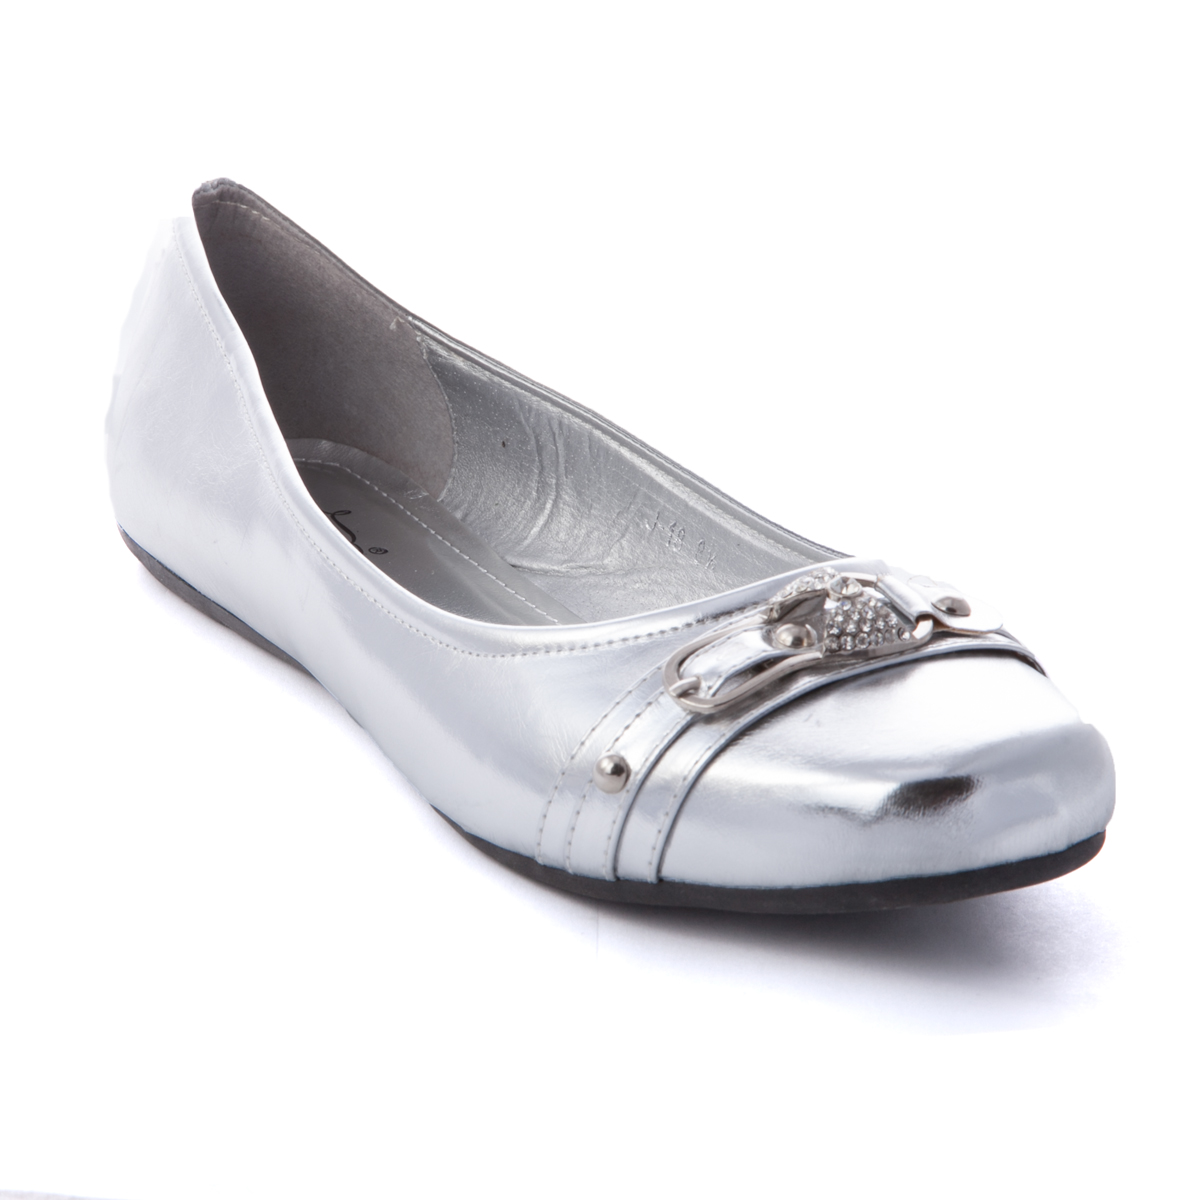 Find great deals on eBay for flat silver sandals. Shop with confidence.